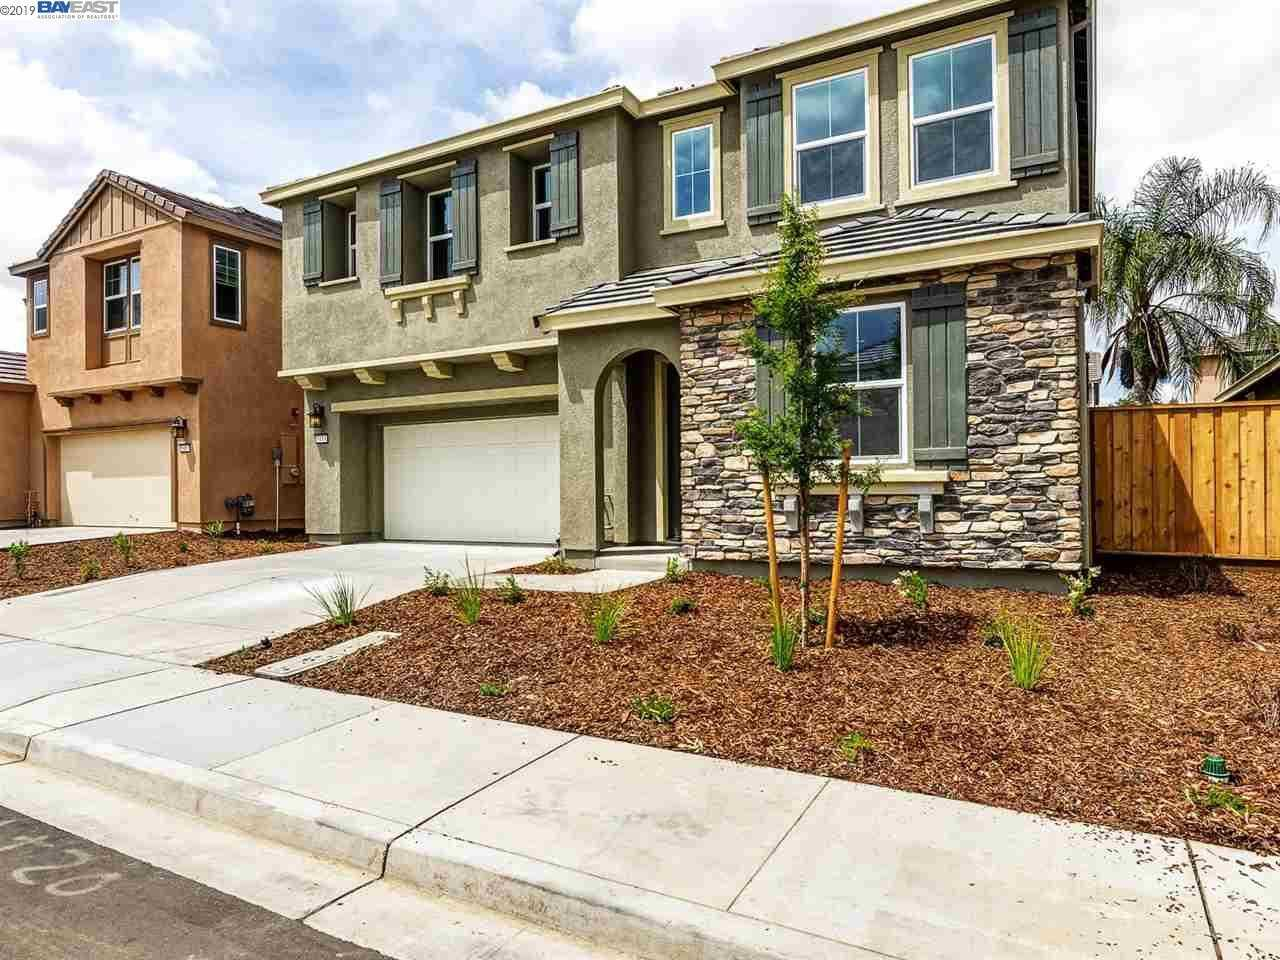 $631,936 - 5Br/3Ba -  for Sale in Not Listed, Antioch